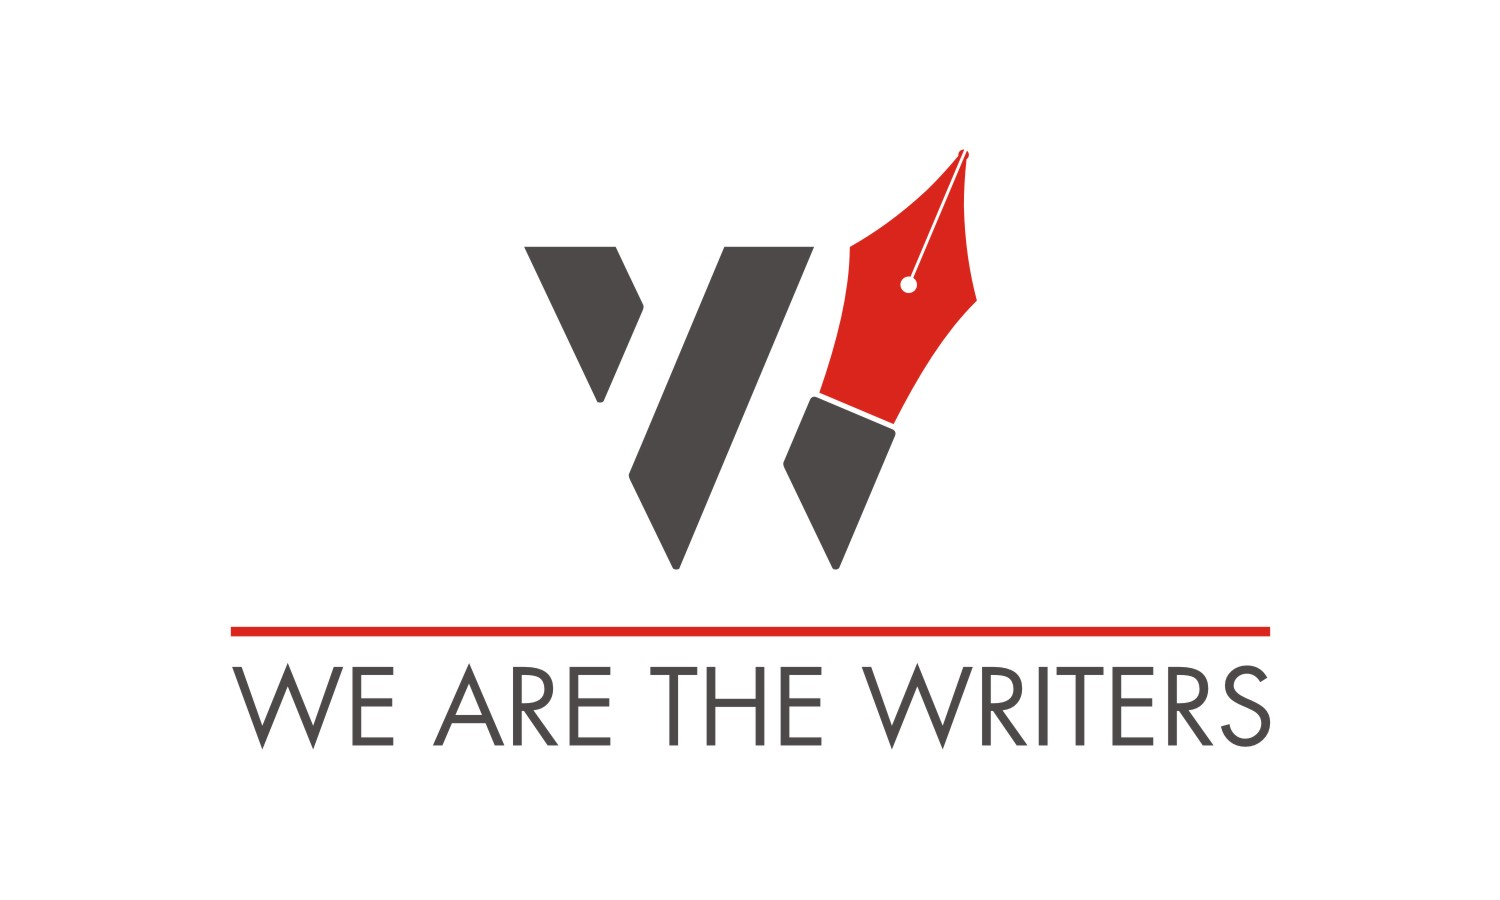 Technical Article Writing – We Are The Writers